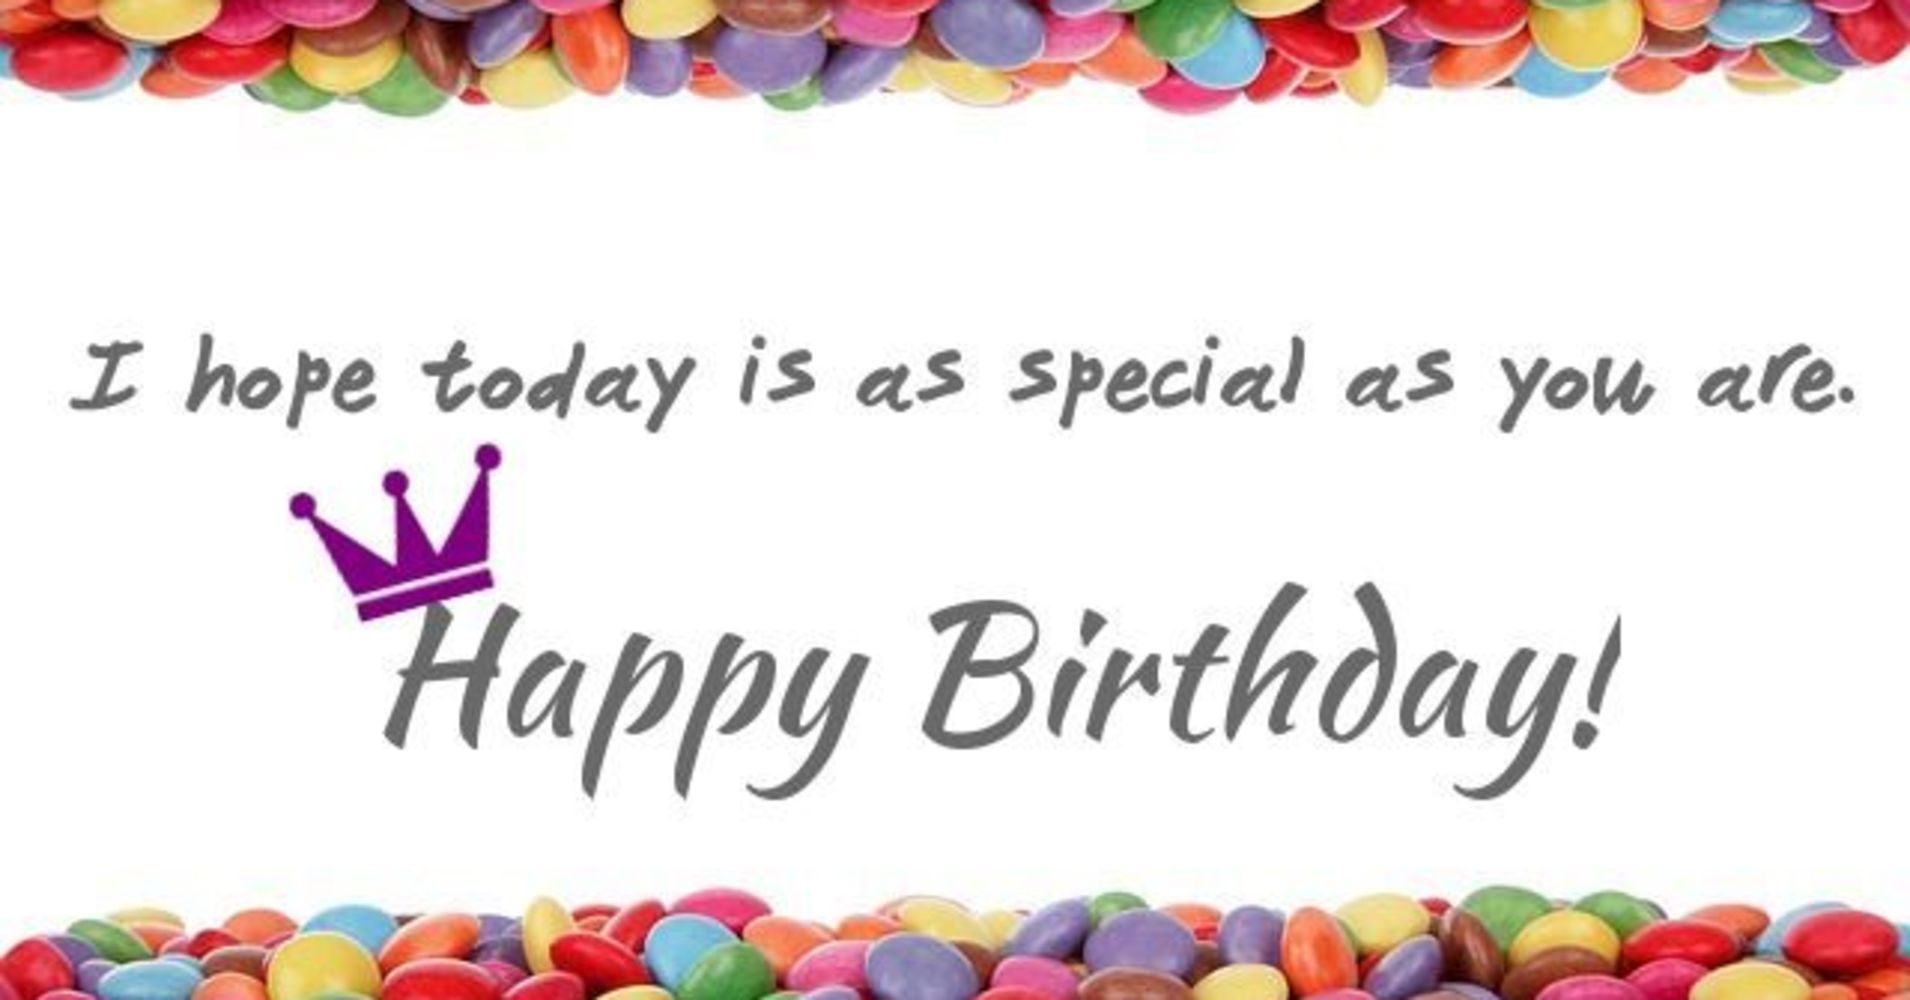 35 Happy Birthday Wishes Quotes & Messages with Funny